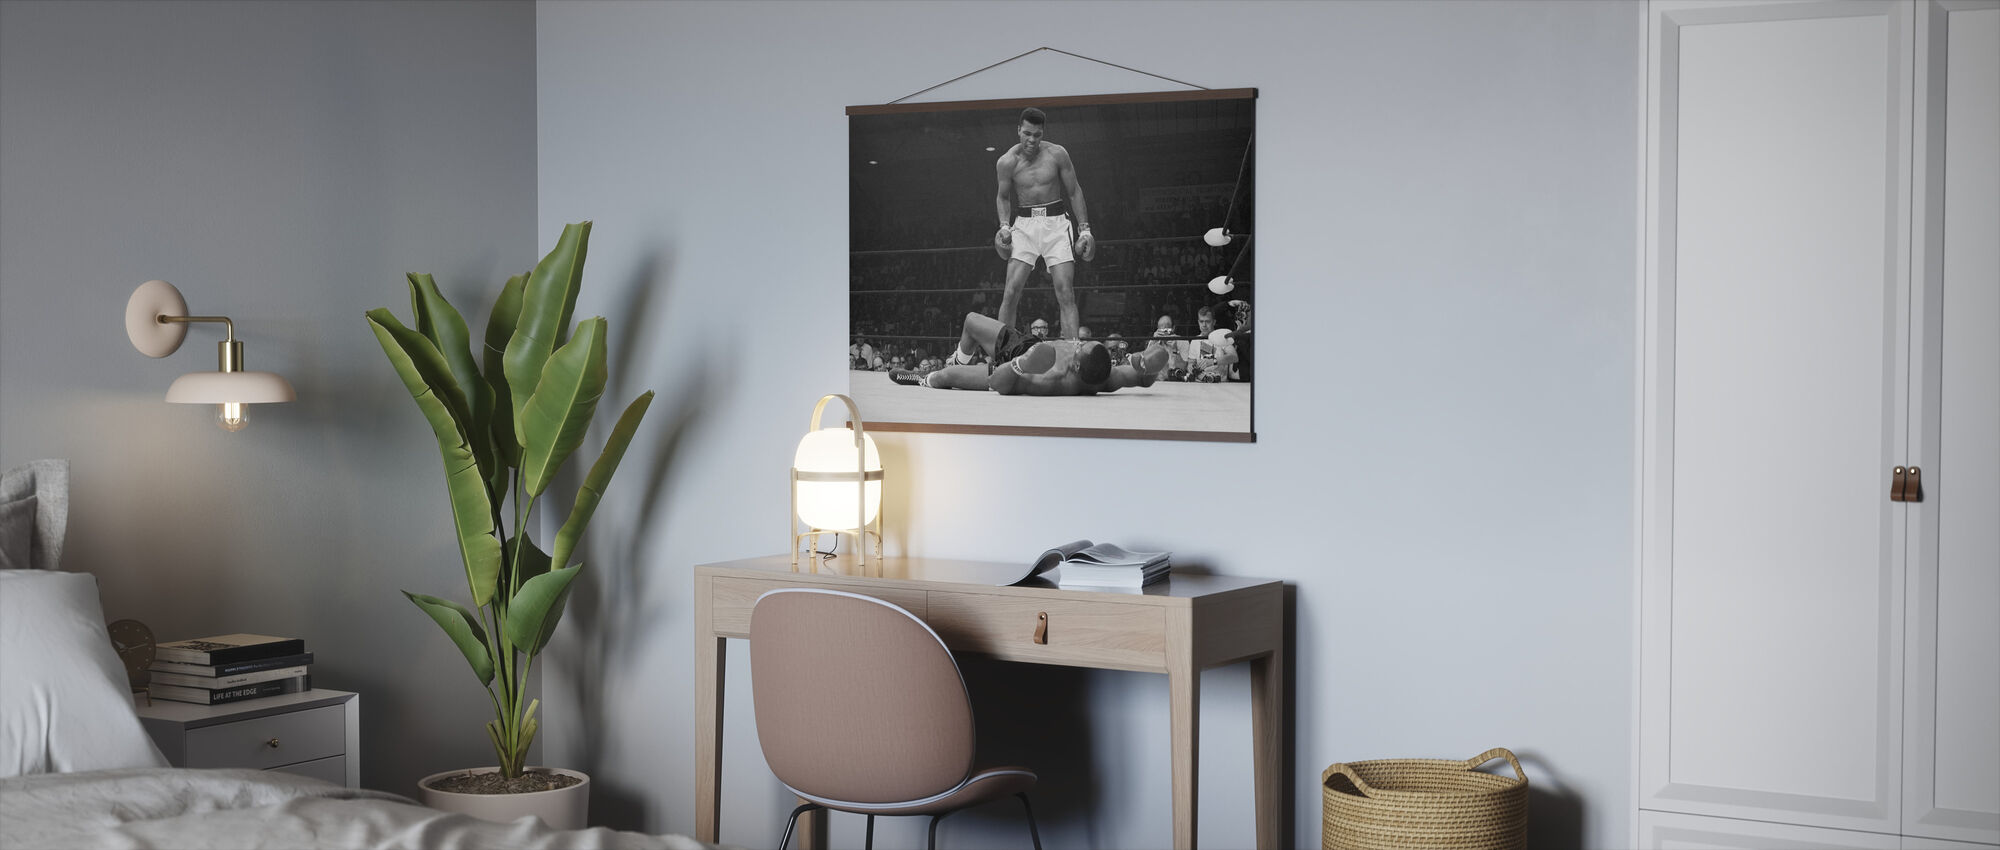 Muhammad Ali vs Sonny Liston - Poster - Office